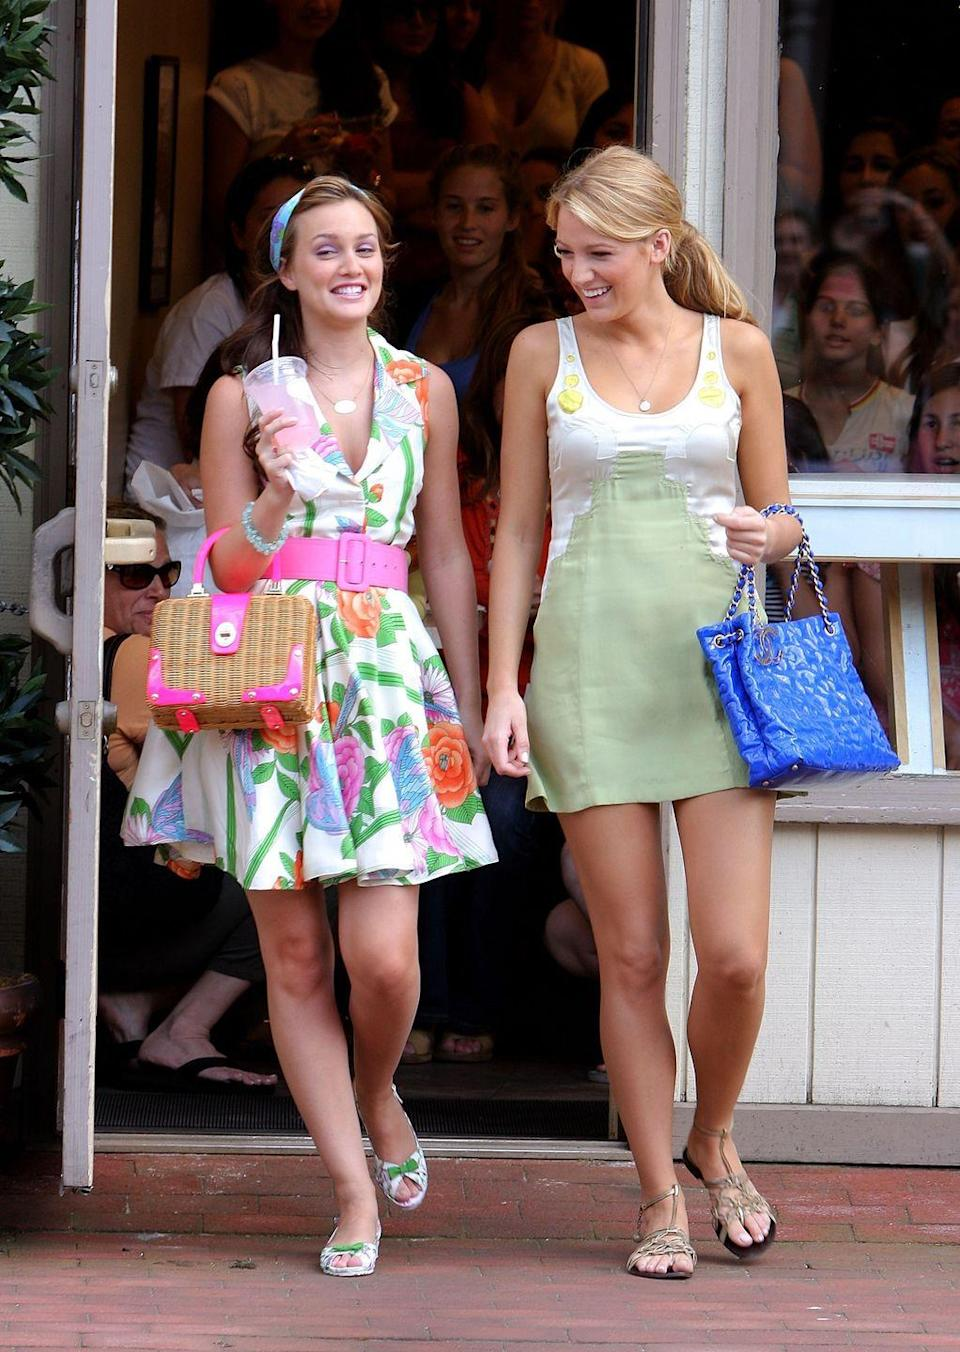 """<p>The queen of the Upper East Side will forever remain a source of inspiration and daydreaming for the sartorial set. We just can't escape her influence. For Halloween, all you'll need is a glamorous floral dress, a bright-colored belt, and the S to your B.</p><p><strong>Get the look: Zimmermann</strong> teddy floral mini dress, $750, <a href=""""https://go.redirectingat.com?id=74968X1596630&url=https%3A%2F%2Fshop.harpersbazaar.com%2Fdesigners%2Fzimmermann%2Fteddy-floral-mini-dress-68933.html&sref=https%3A%2F%2Fwww.harpersbazaar.com%2Ffashion%2Ftrends%2Fg2339%2Ffashionable-halloween-costume-ideas%2F"""" rel=""""nofollow noopener"""" target=""""_blank"""" data-ylk=""""slk:shopbazaar.com"""" class=""""link rapid-noclick-resp"""">shopbazaar.com</a>. </p><p><a class=""""link rapid-noclick-resp"""" href=""""https://go.redirectingat.com?id=74968X1596630&url=https%3A%2F%2Fshop.harpersbazaar.com%2Fdesigners%2Fzimmermann%2Fteddy-floral-mini-dress-68933.html&sref=https%3A%2F%2Fwww.harpersbazaar.com%2Ffashion%2Ftrends%2Fg2339%2Ffashionable-halloween-costume-ideas%2F"""" rel=""""nofollow noopener"""" target=""""_blank"""" data-ylk=""""slk:SHOP"""">SHOP</a> </p>"""